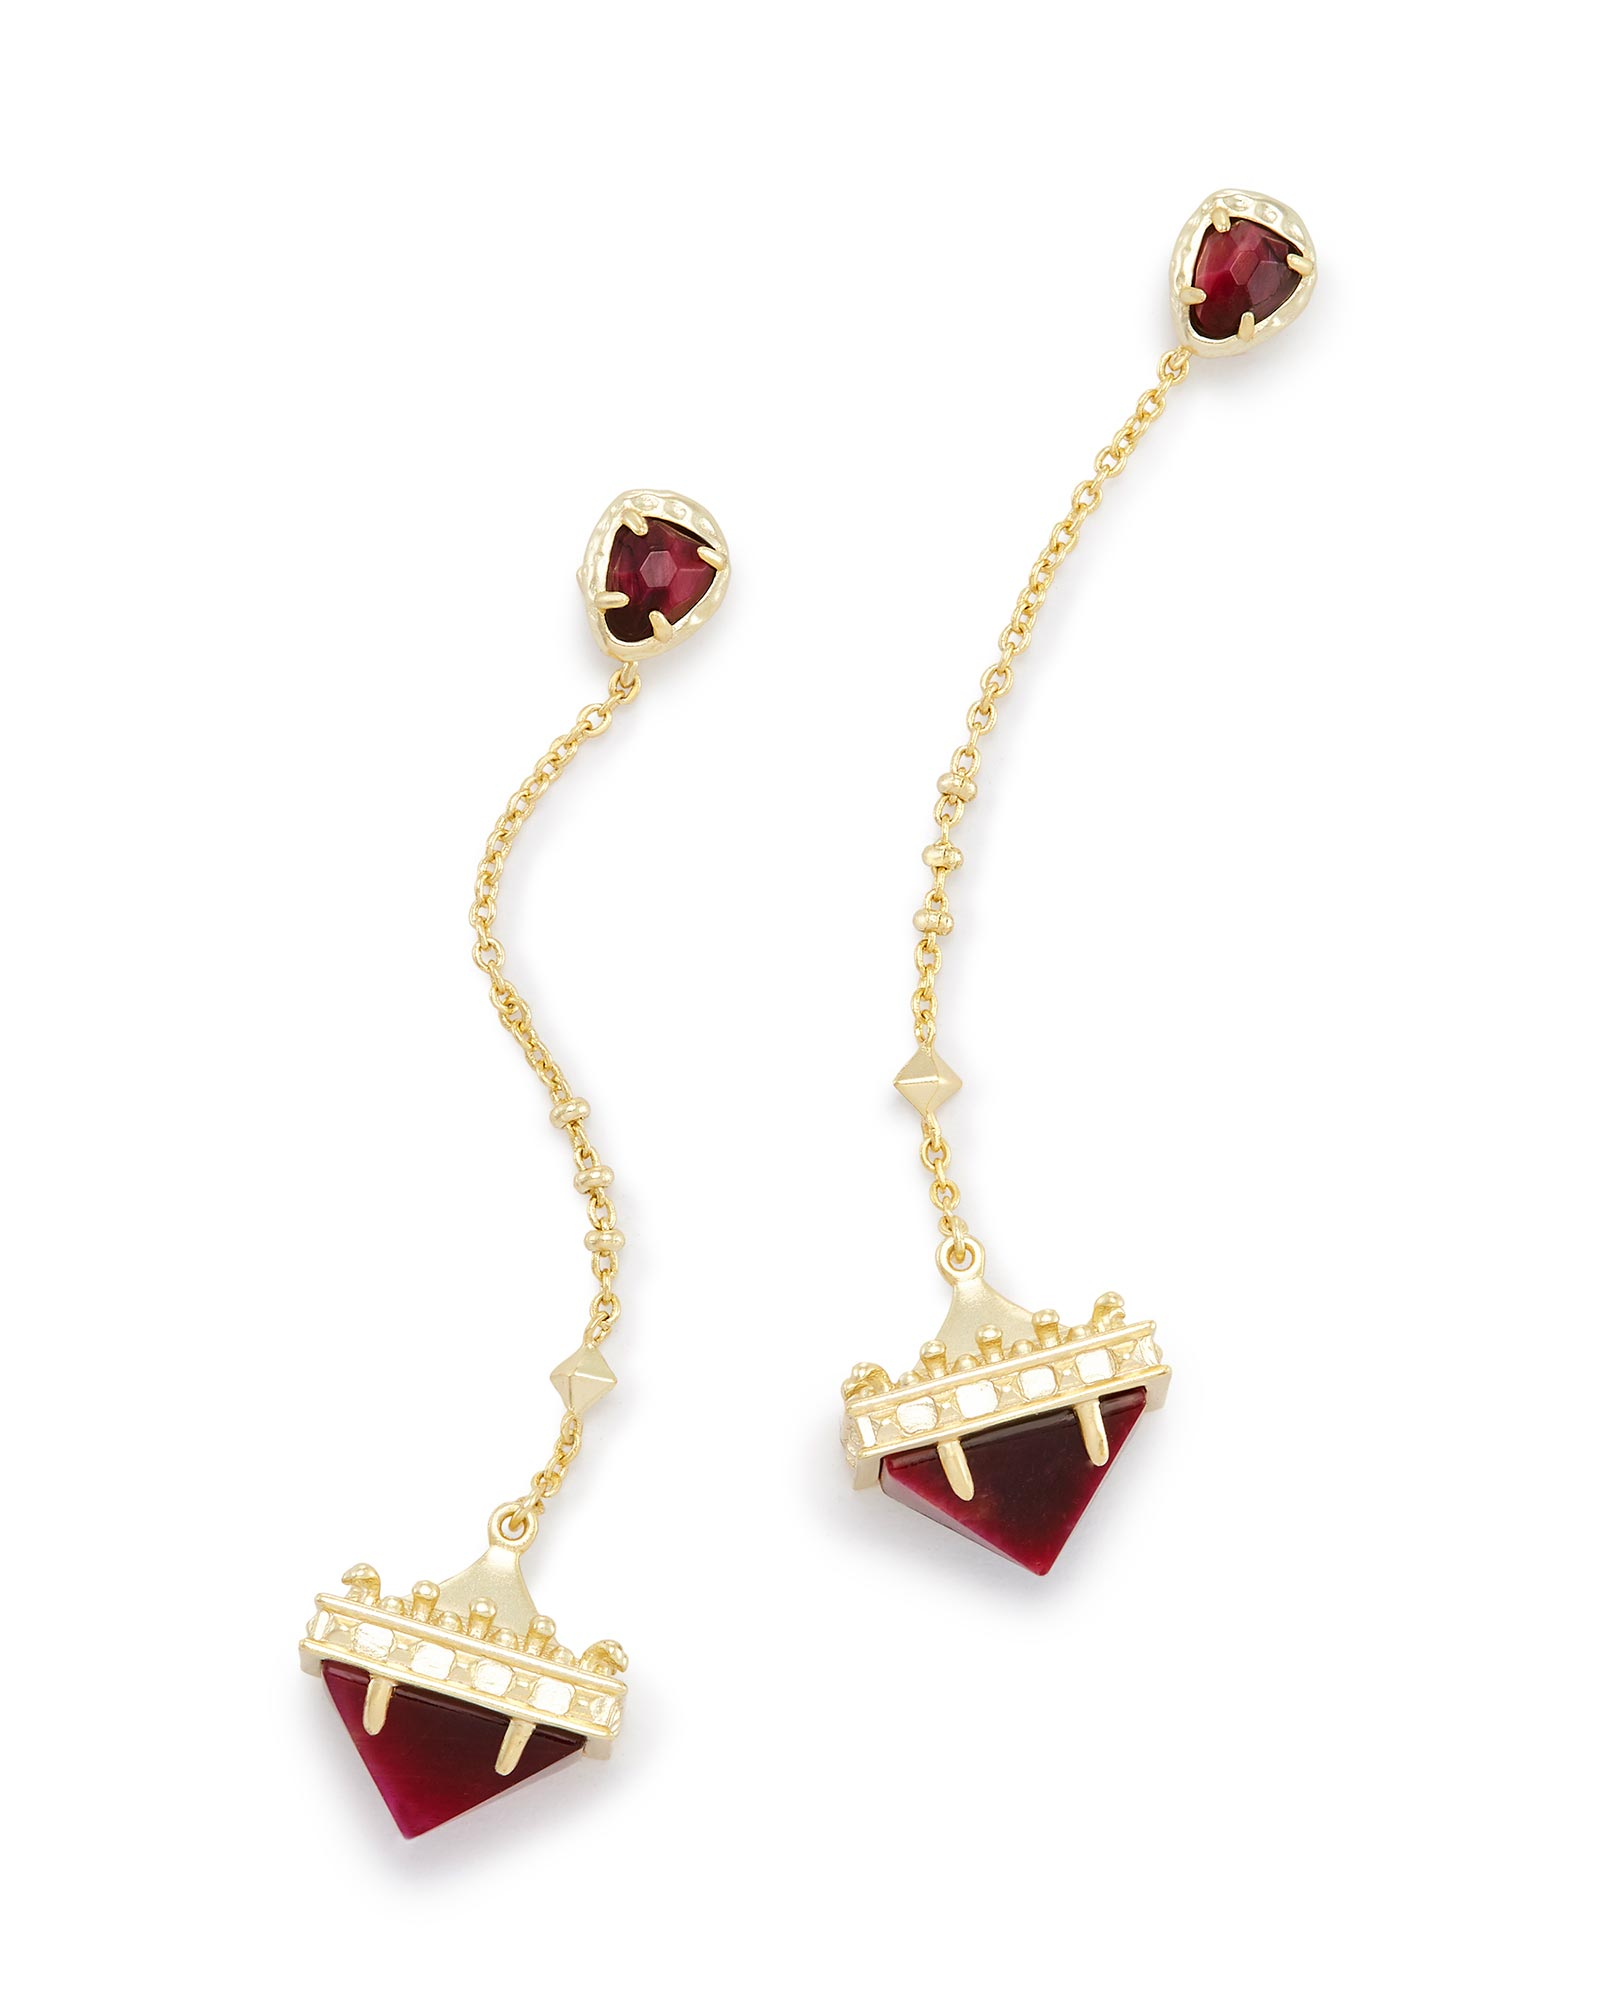 kendra-scott-gigi-gold-ear-jackets-in-red-garnet_00_default_lg.jpg